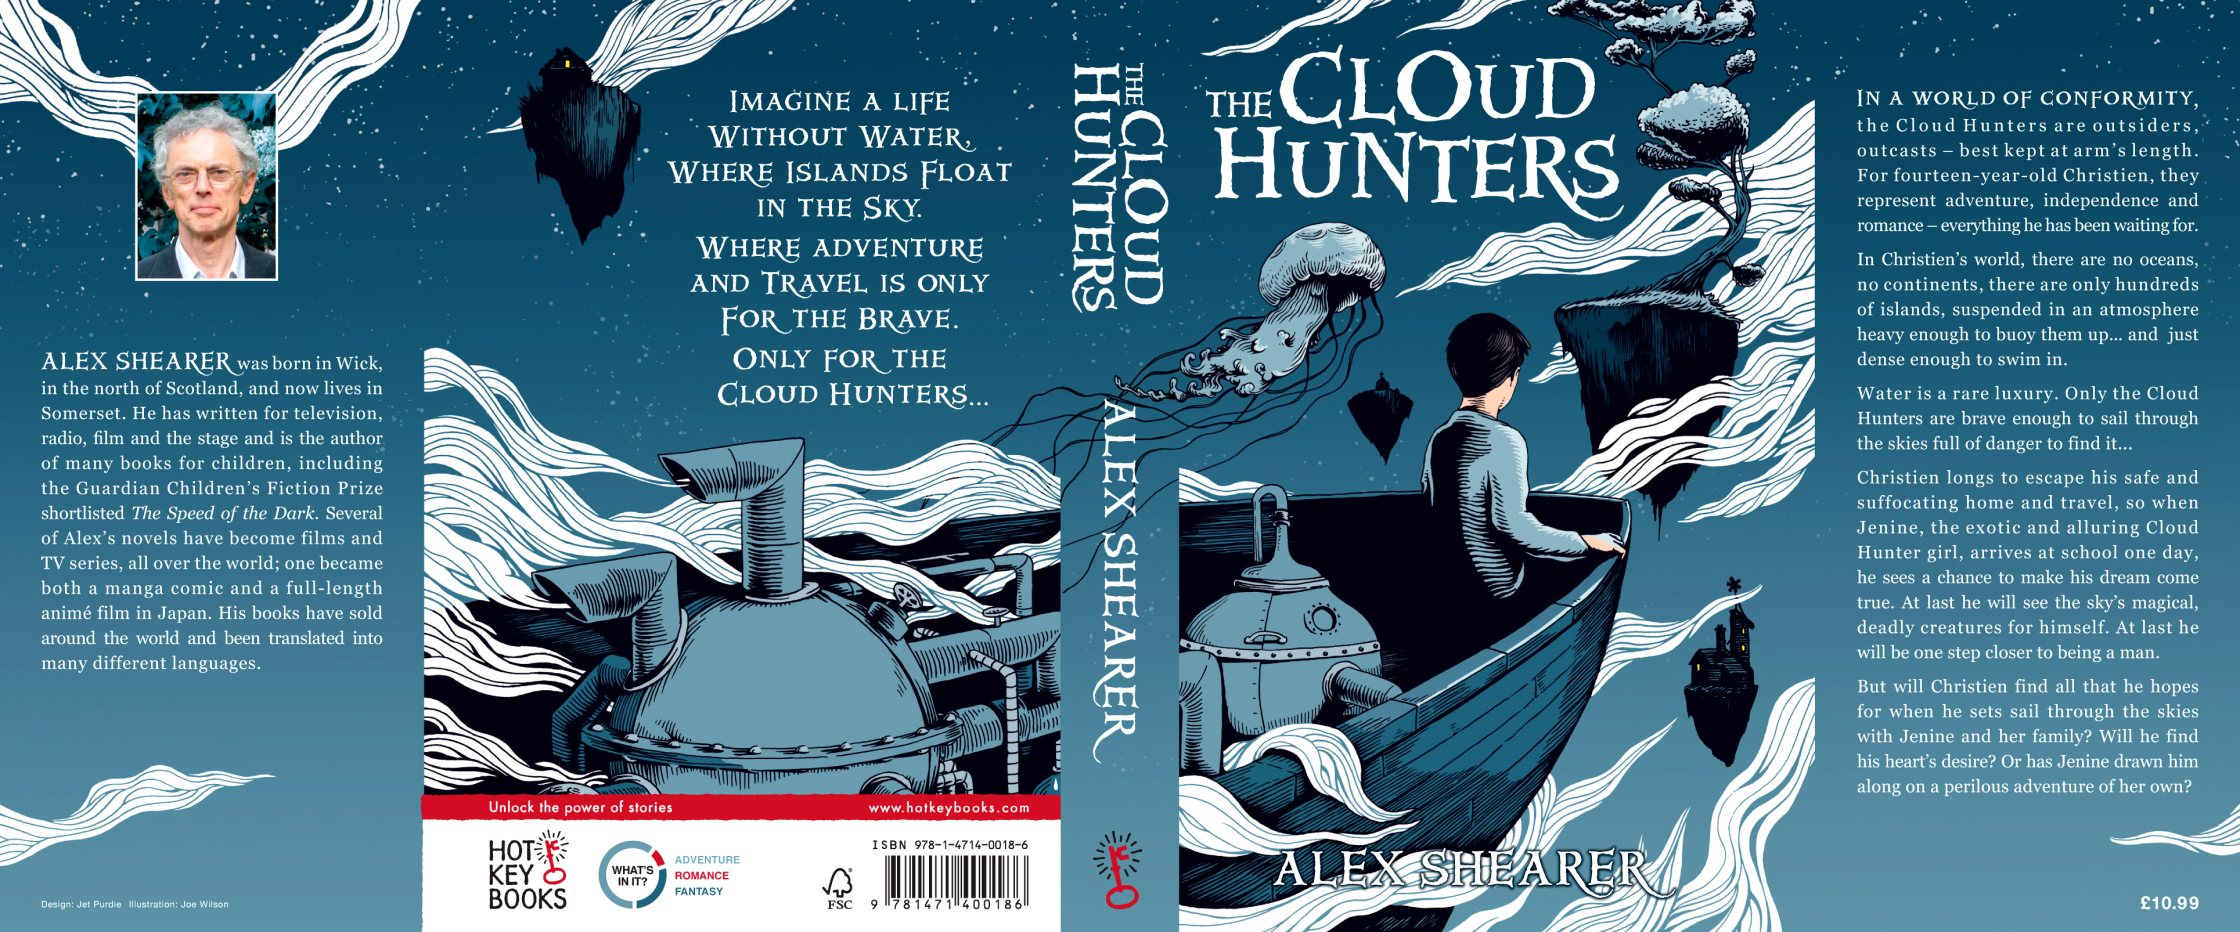 The Cloud Hunters Book Cover